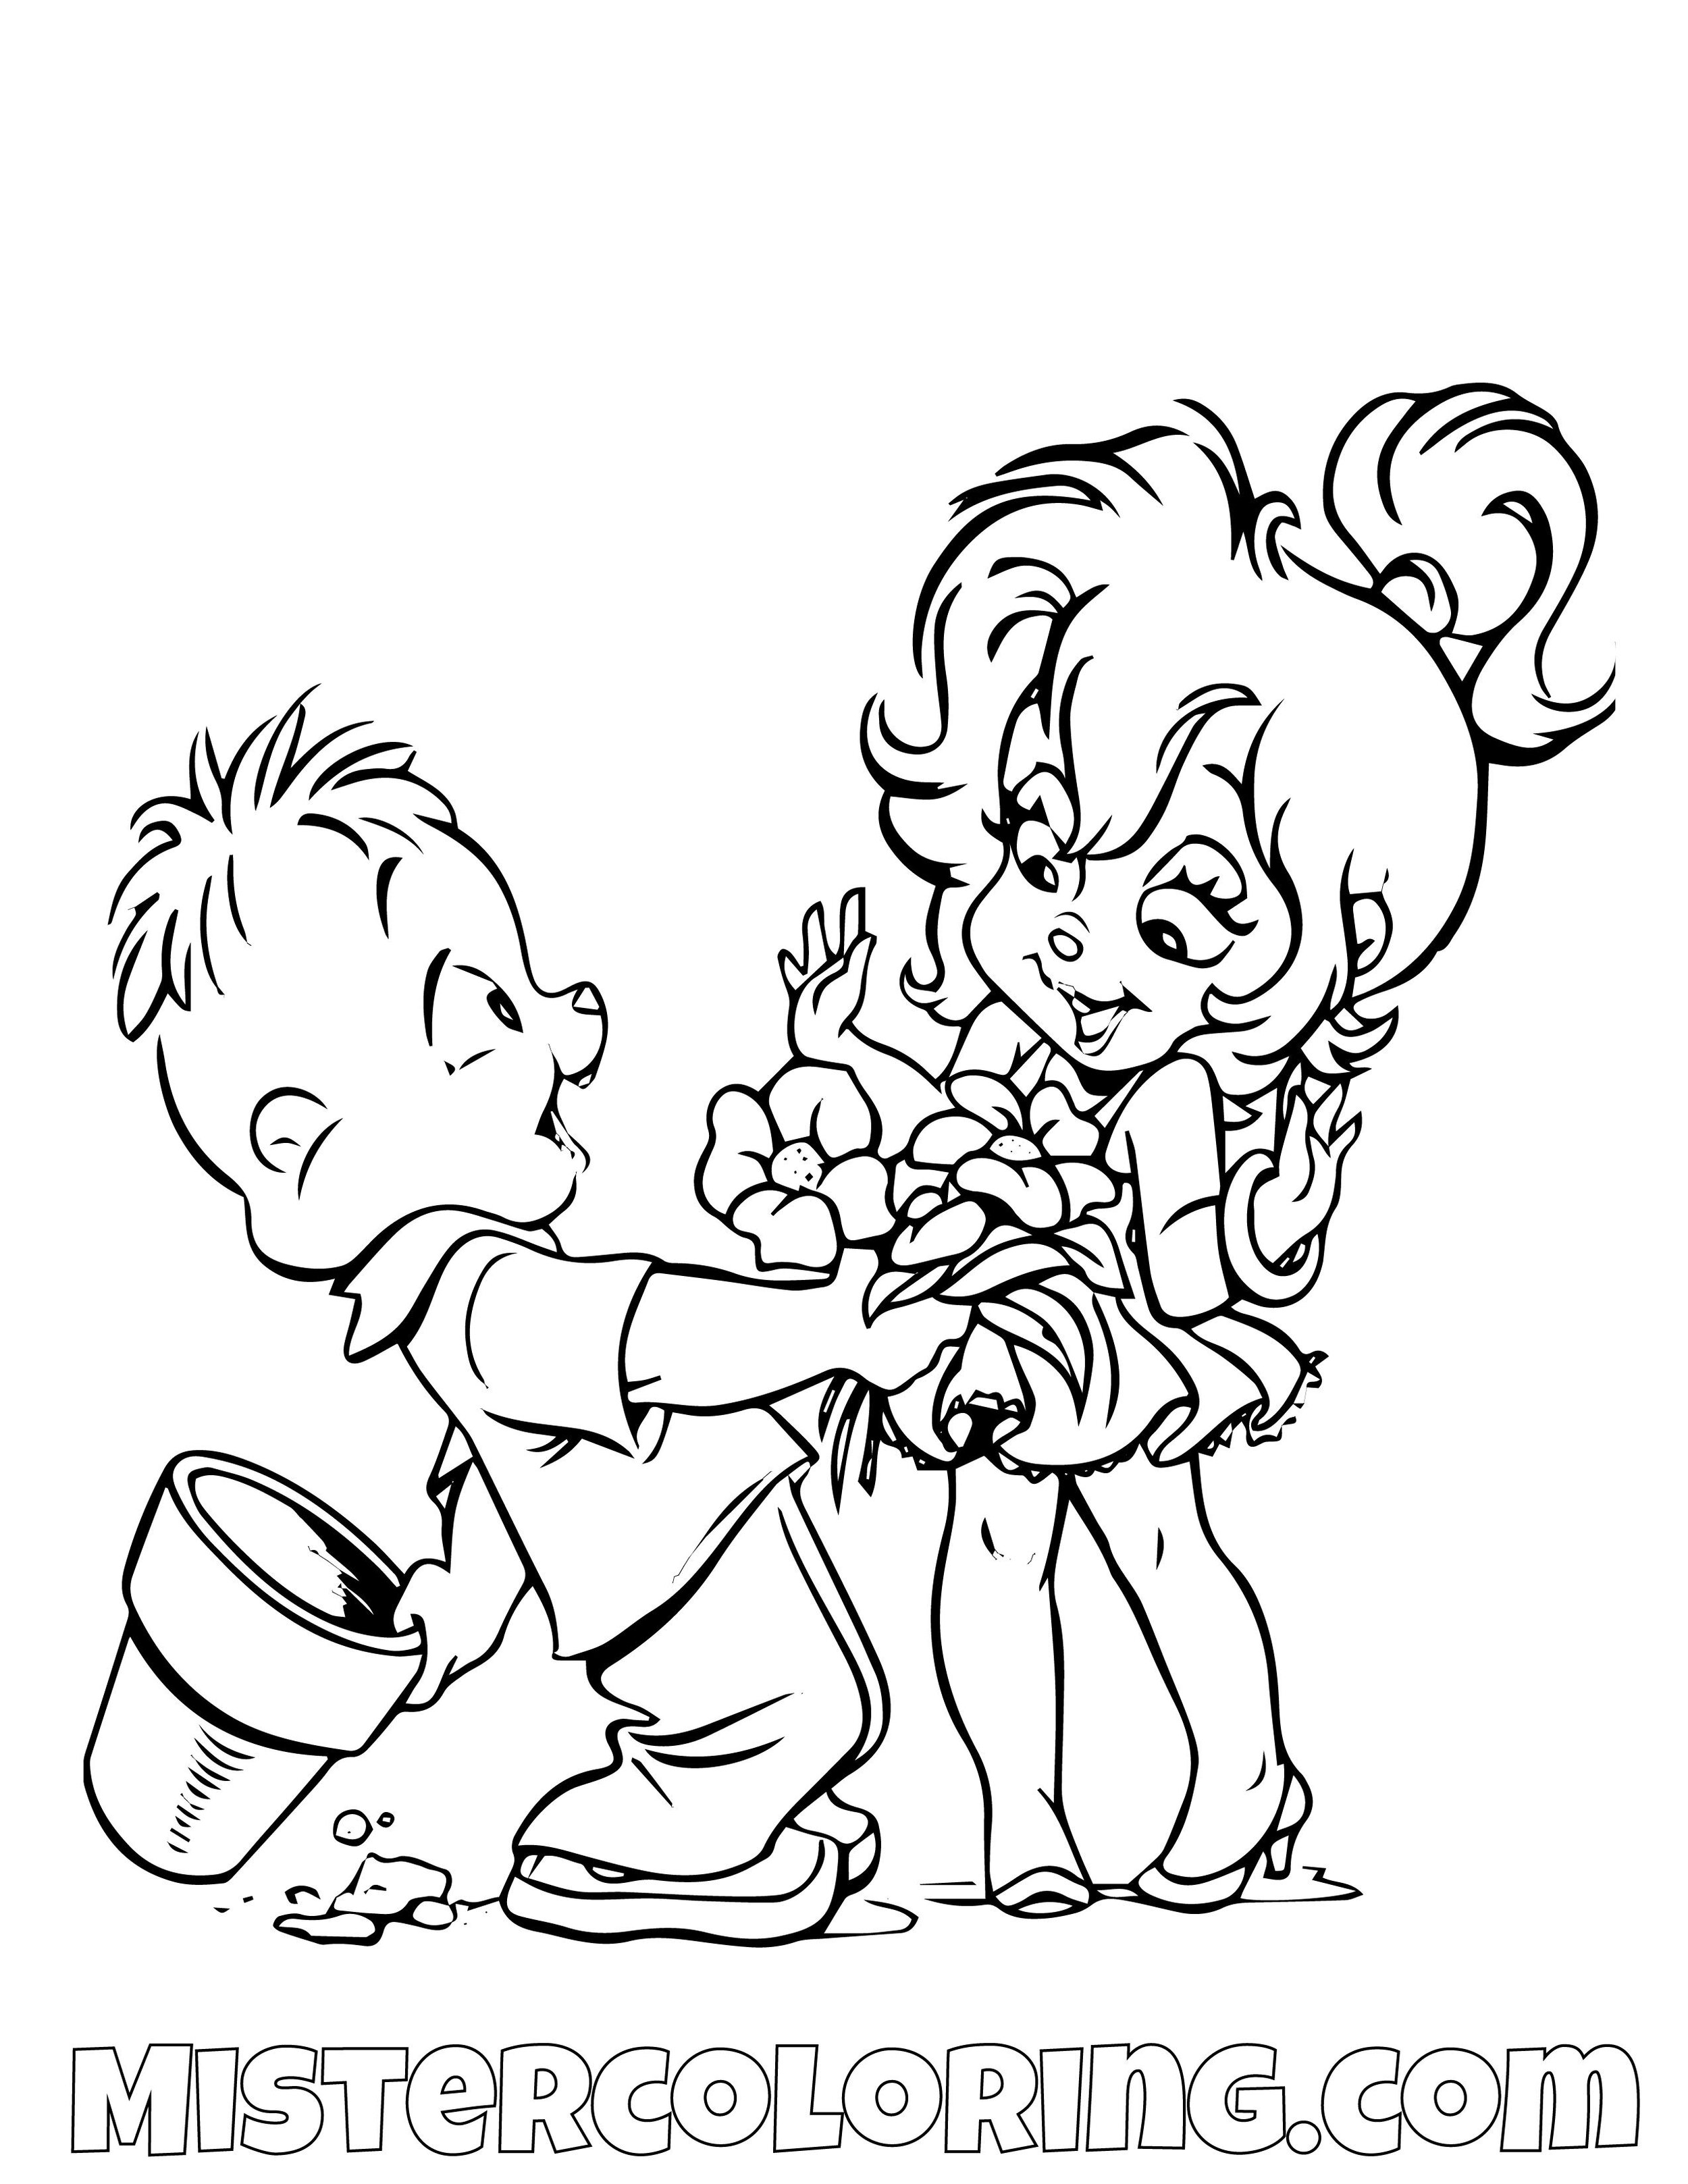 The Widow's Mite Offering Coloring Pages for Kids – ConnectUS | 1294x1000